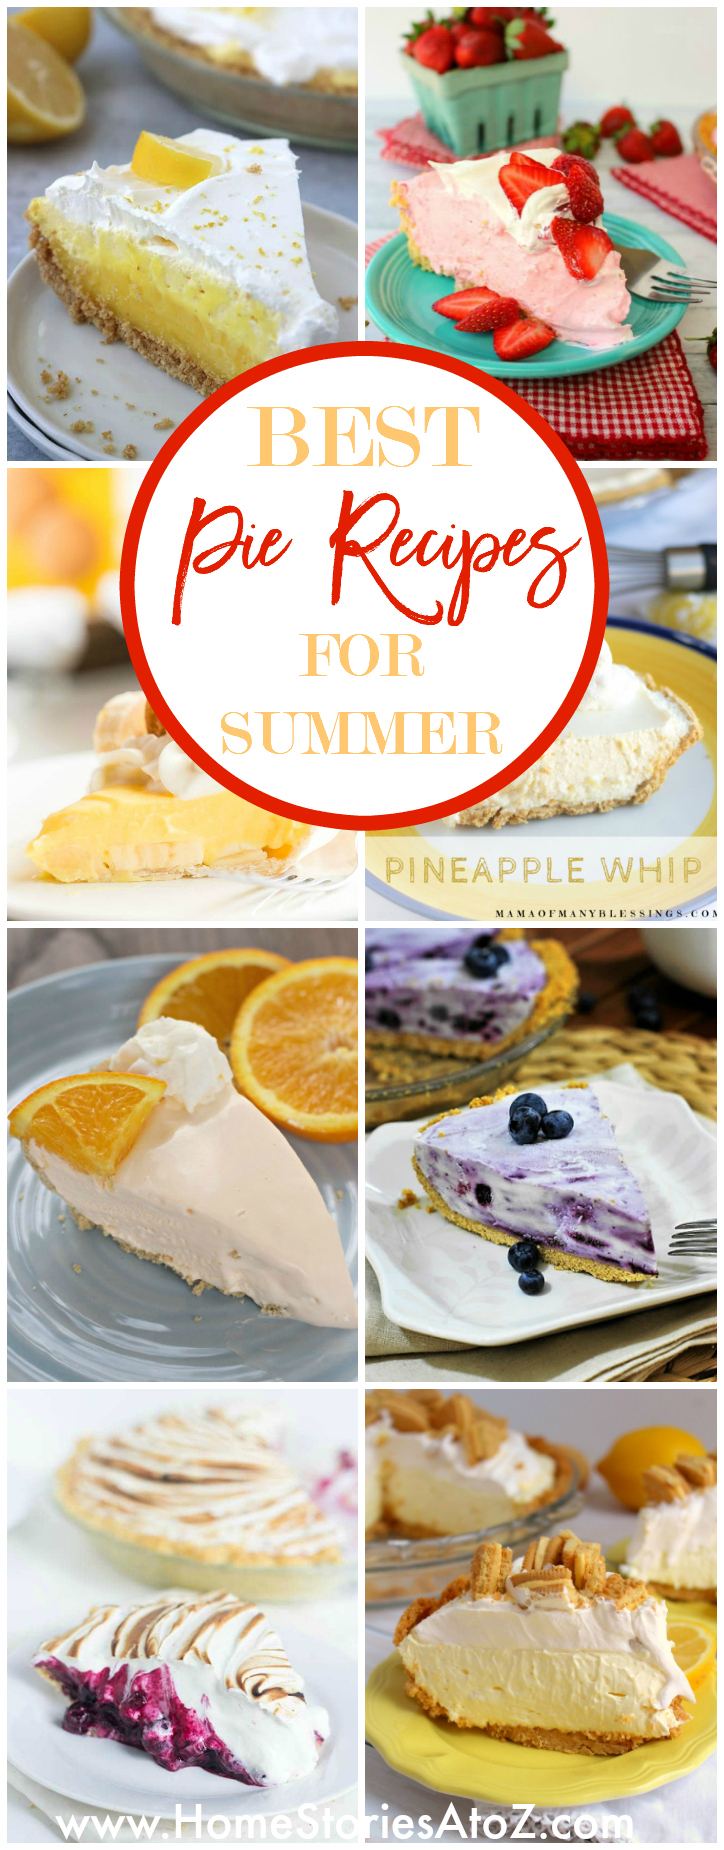 Best Pie Recipes for Summer - Home Stories A to Z